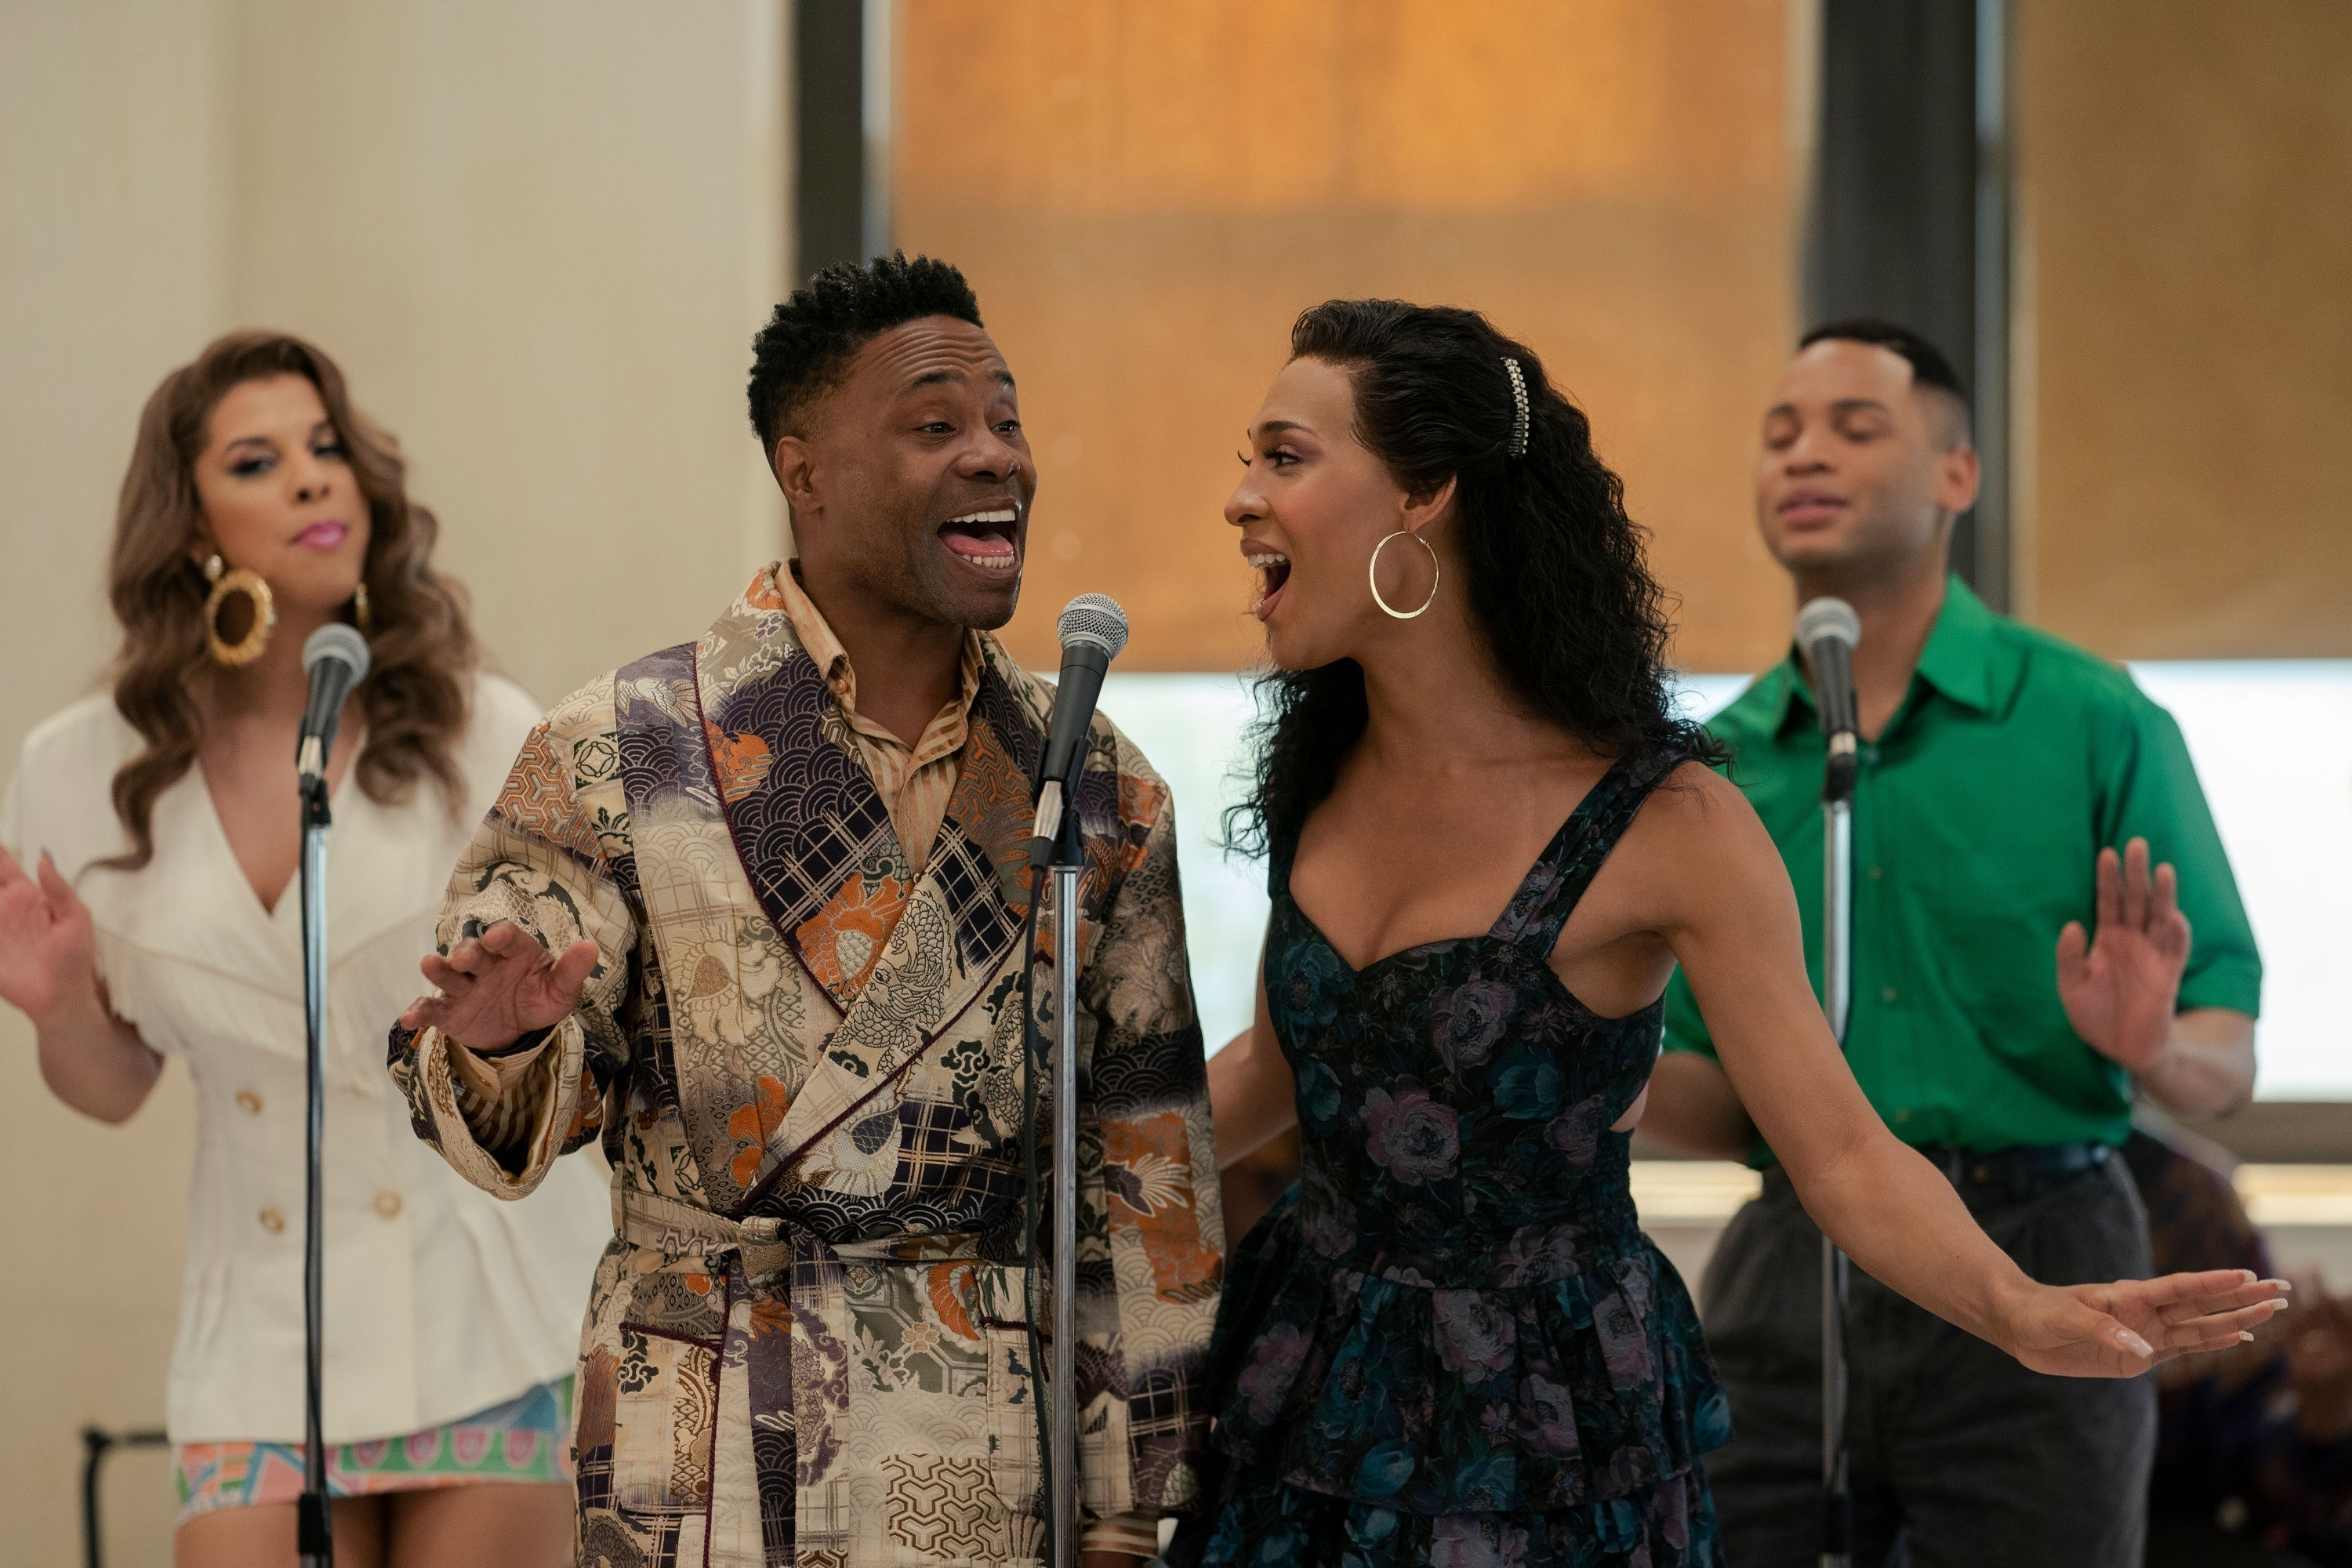 Billy singing as Pray Tell in a scene from Pose